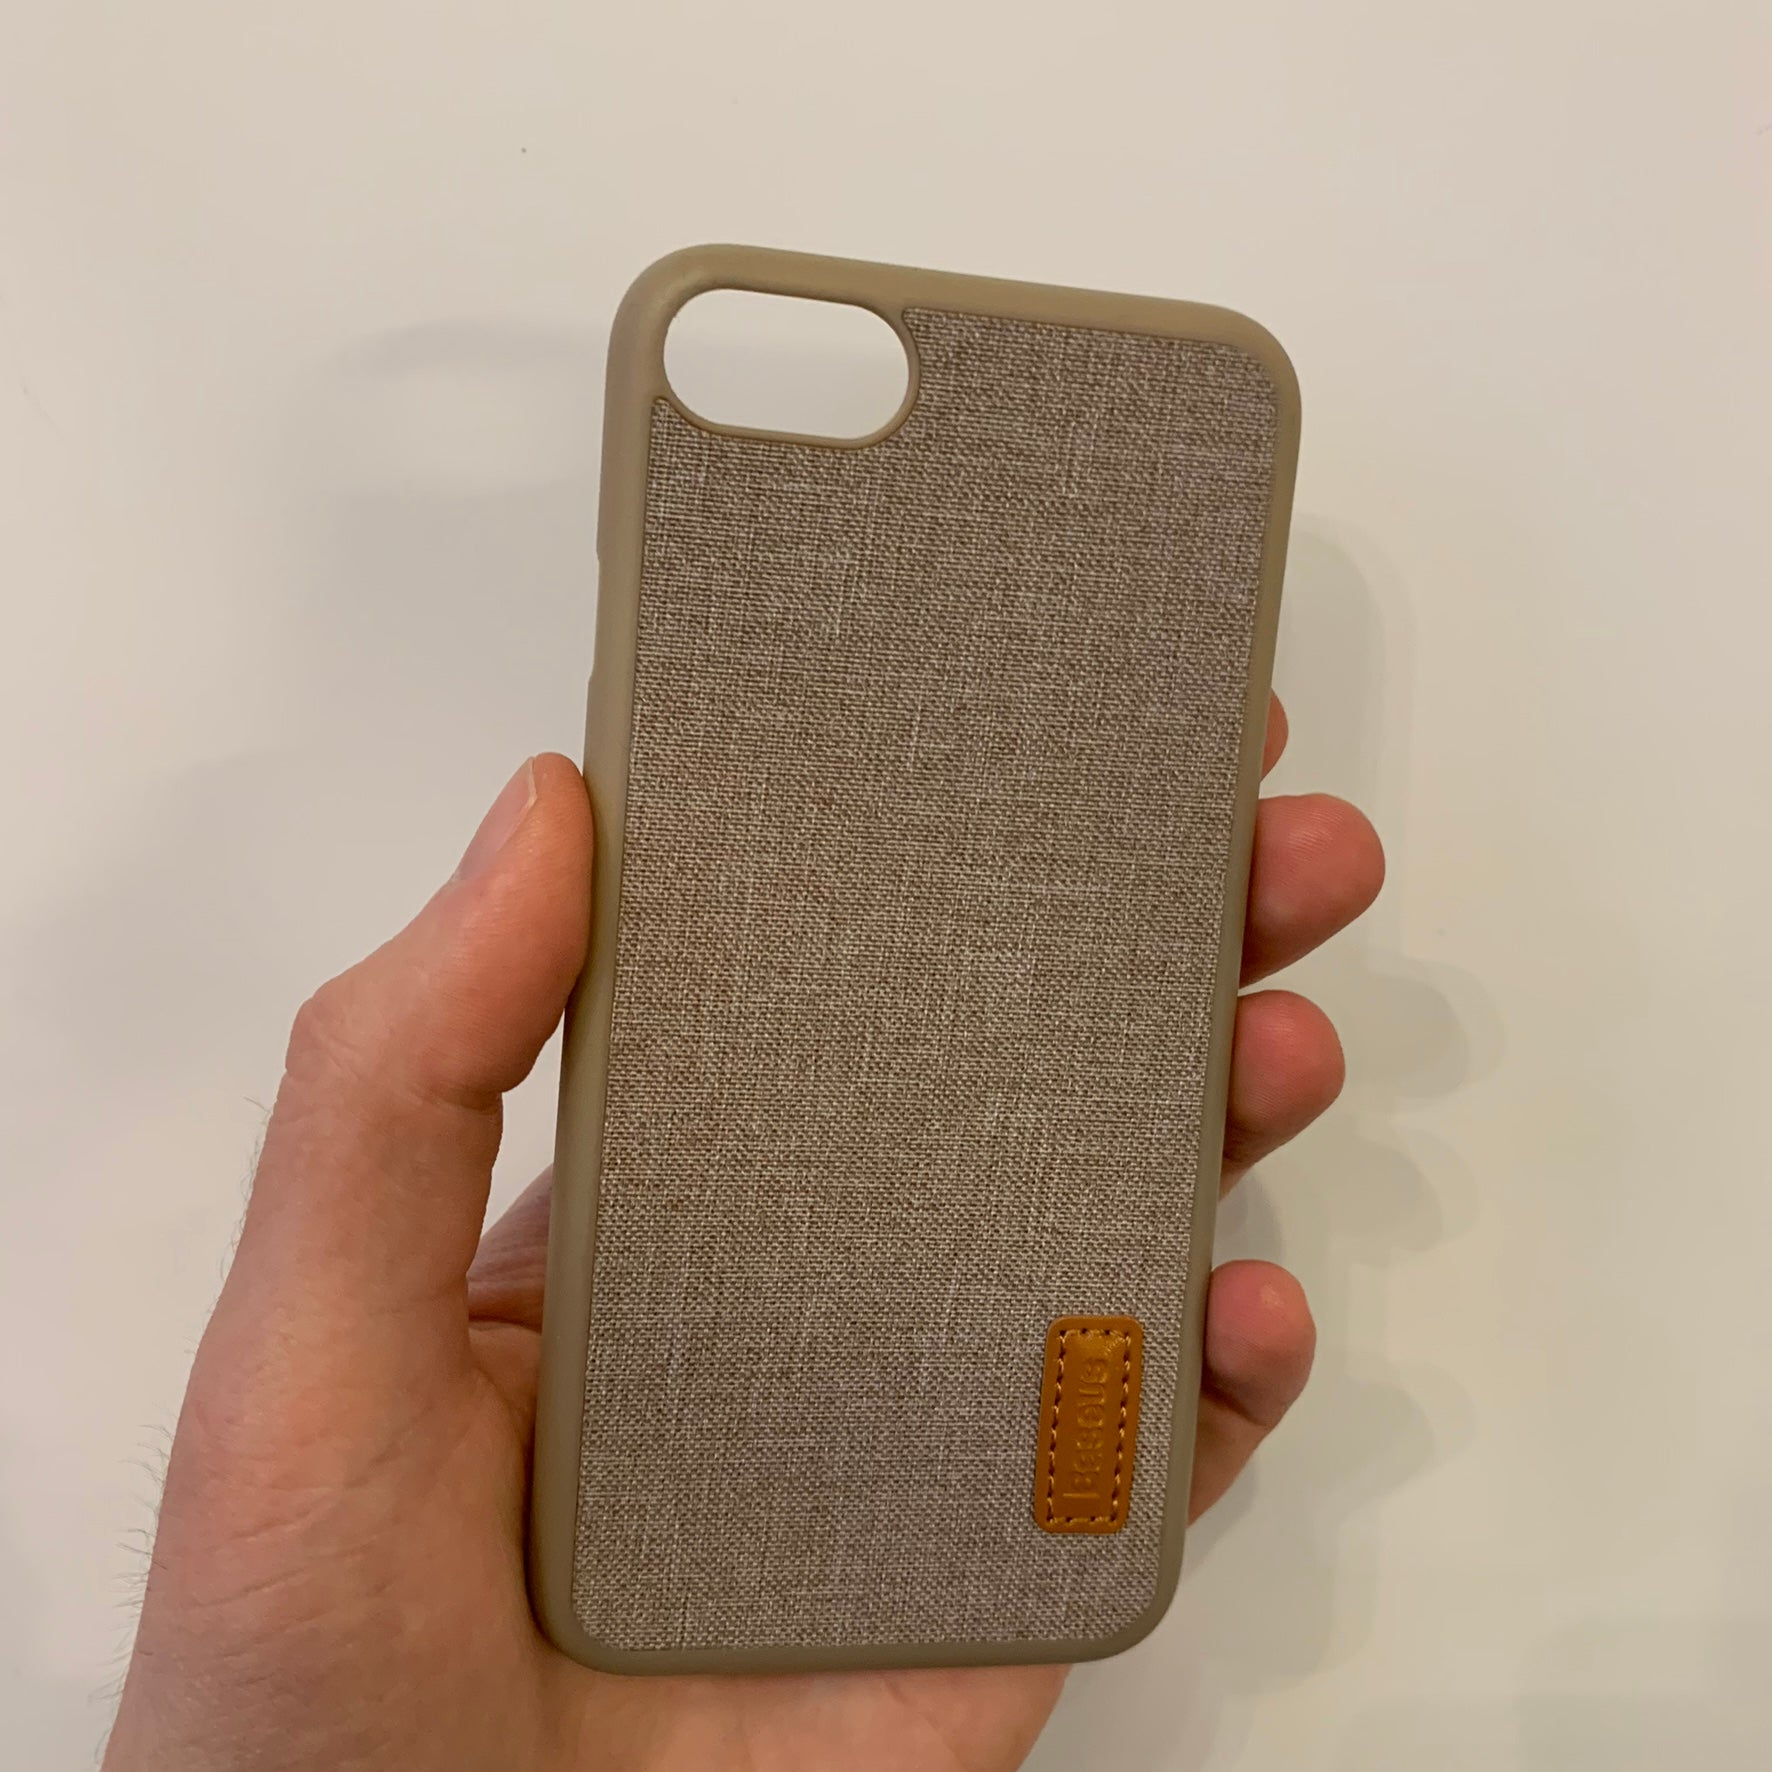 04 iPhone 7/8 Textured Case